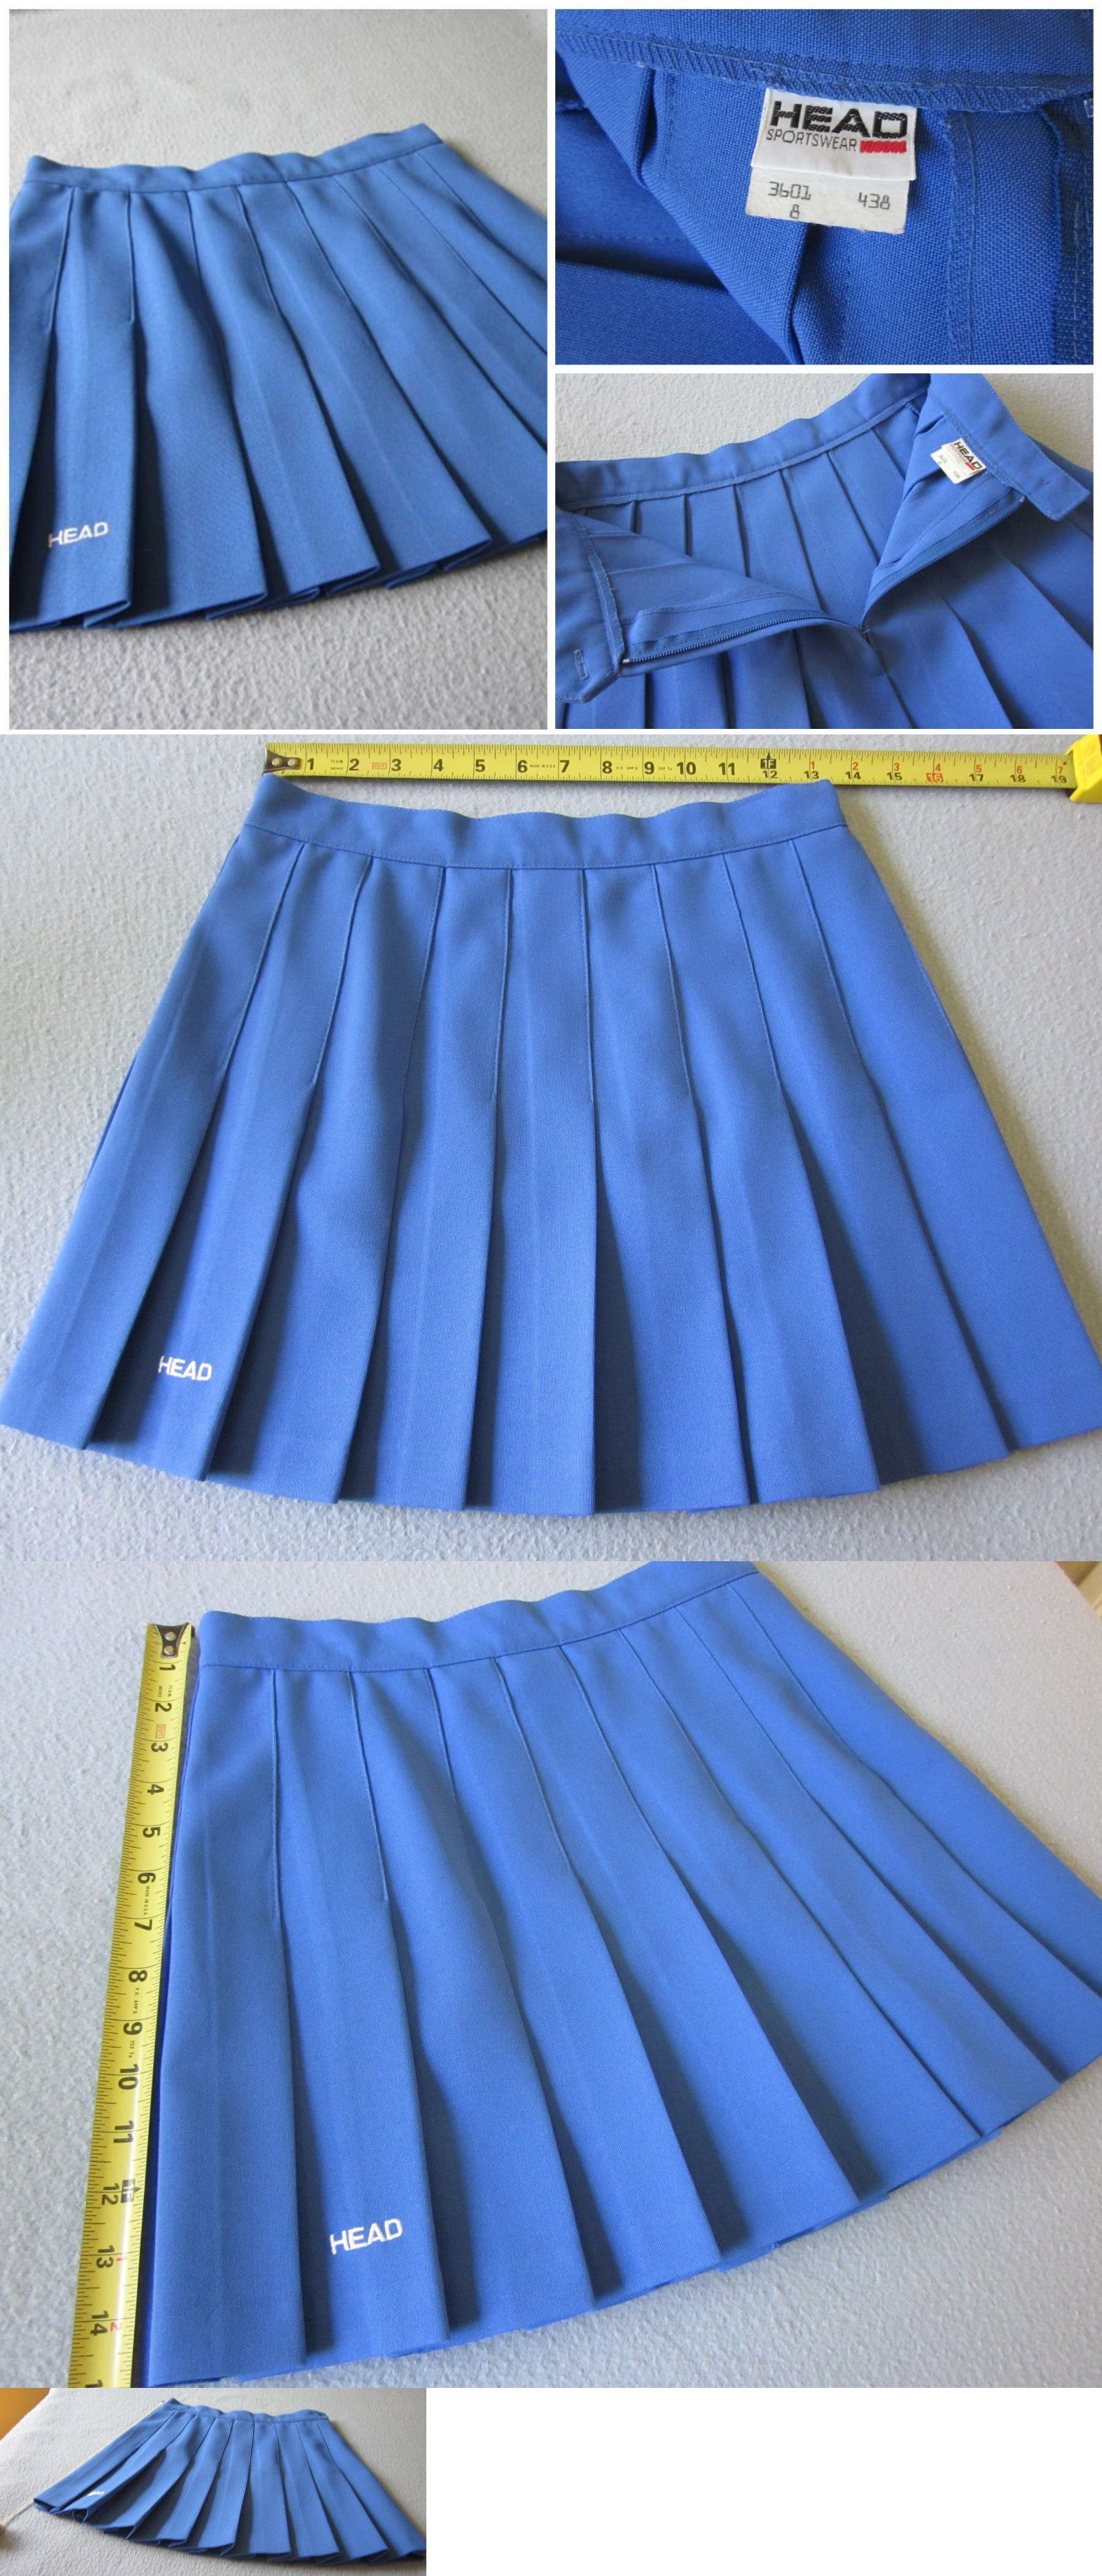 927ba6e222 Skirts 50992: Head Tennis Skirt Blue Pleated Size 8 -> BUY IT NOW ONLY:  $27.5 on #eBay #skirts #tennis #skirt #pleated